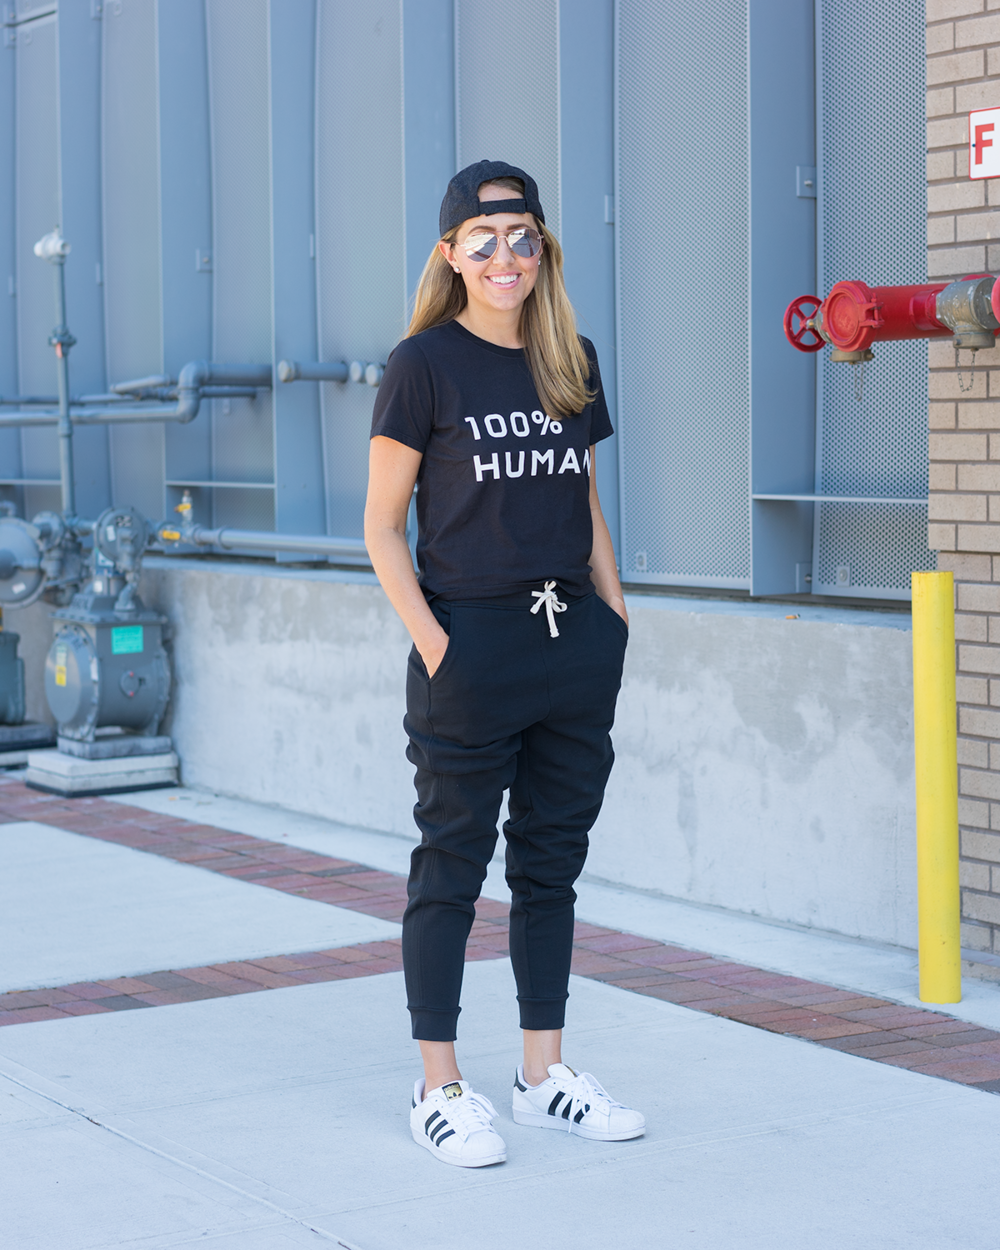 Black graphic tee, black sweats from Everlane